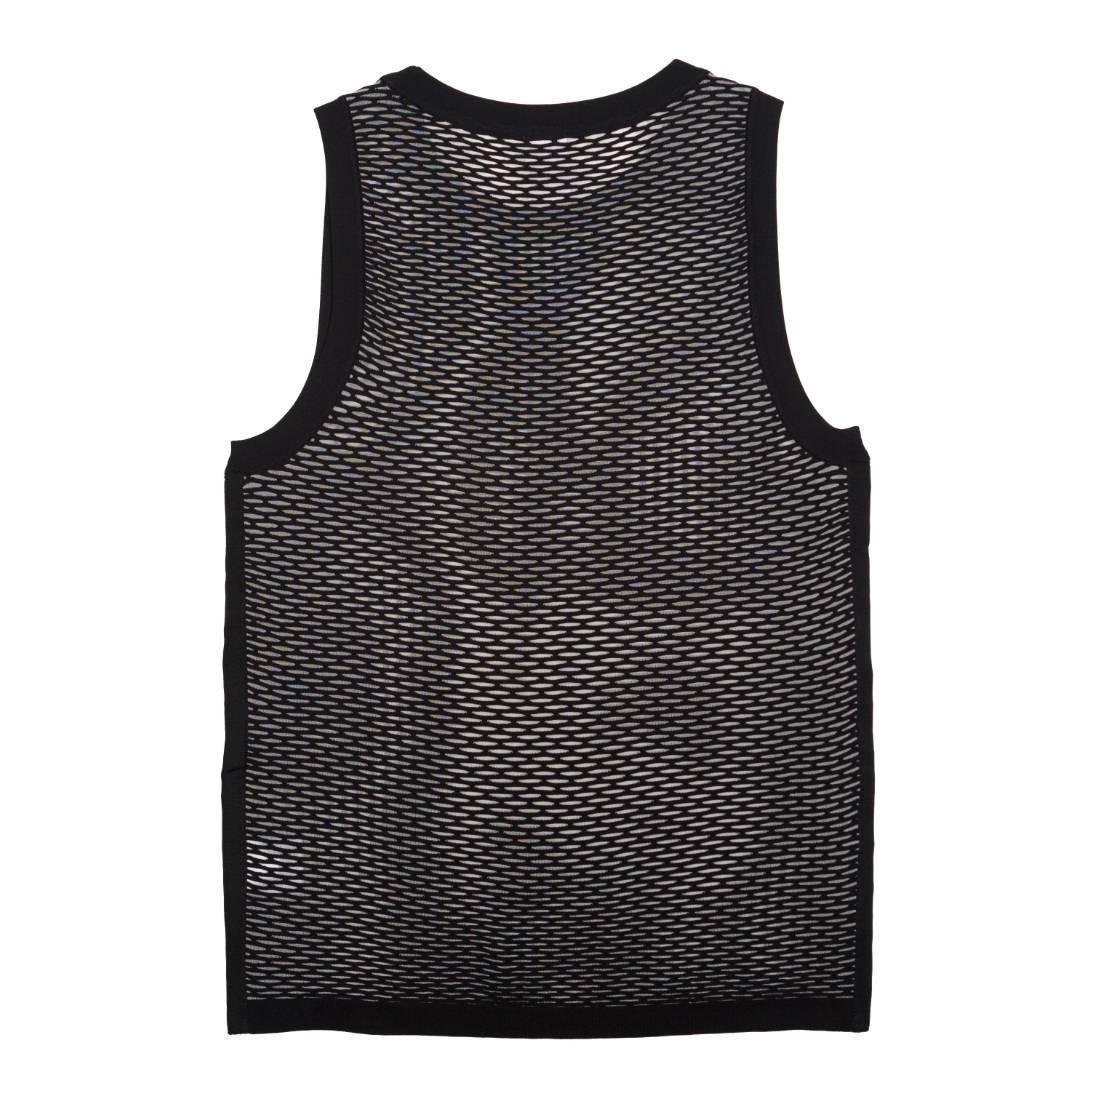 912dcaae4a3a8 nikelab women nrg knit tank top black black